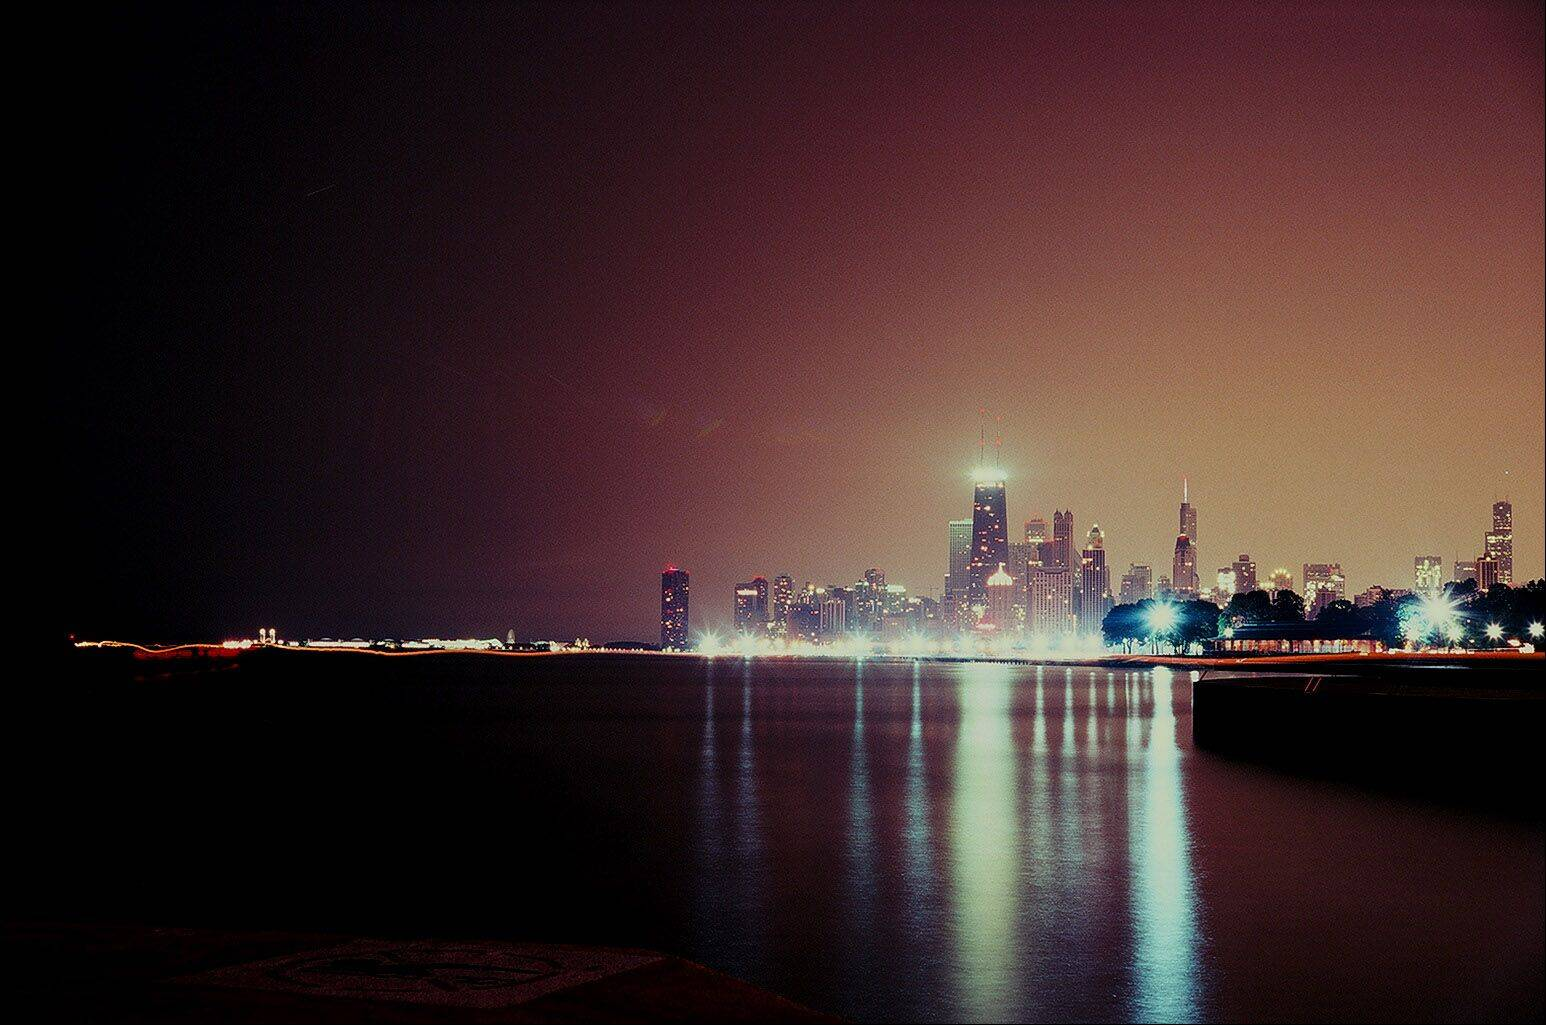 This is a photo of the Chicago skyline from the lakeshore near the Belmont exit off Lake Shore Drive. I took the photo with a Yashica Electro 35 GSN with Kodak Portra 400 NC at f8 for about five or so minutes.